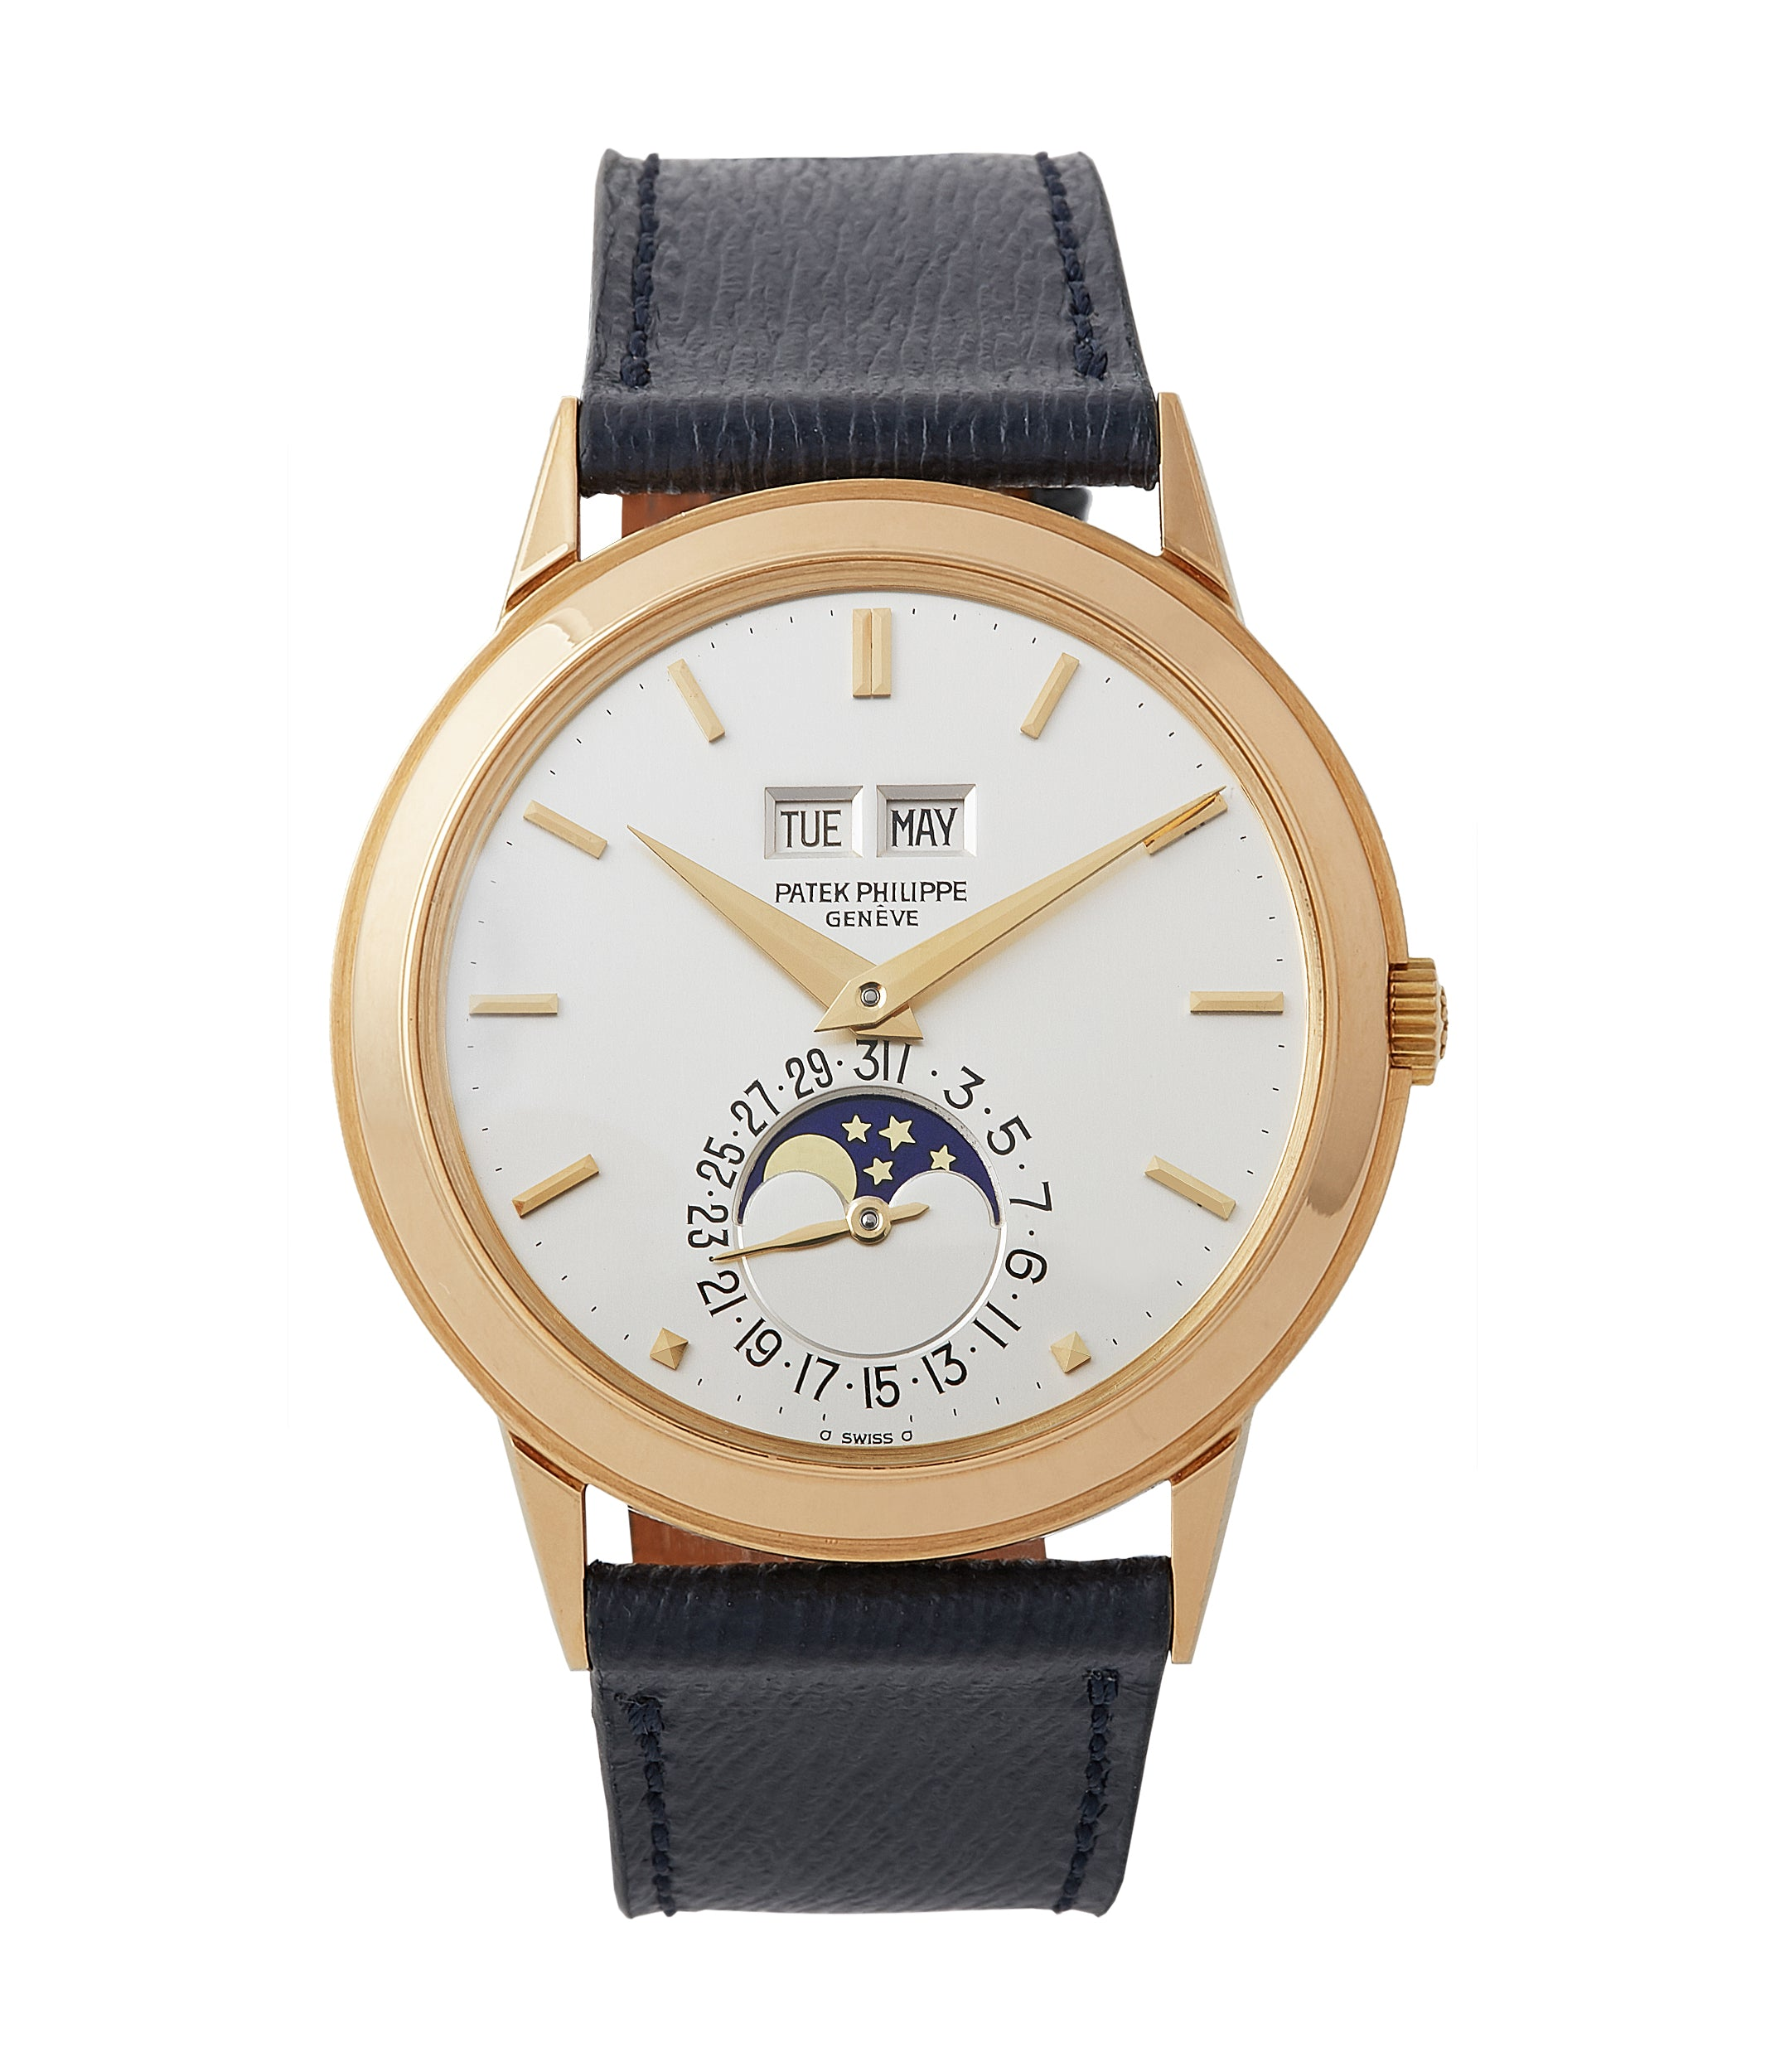 buy vintage Patek Philippe 3448 Perpetual Calendar Moonphase yellow gold dress watch for sale online at A Collected Man London UK specialist of rare watches